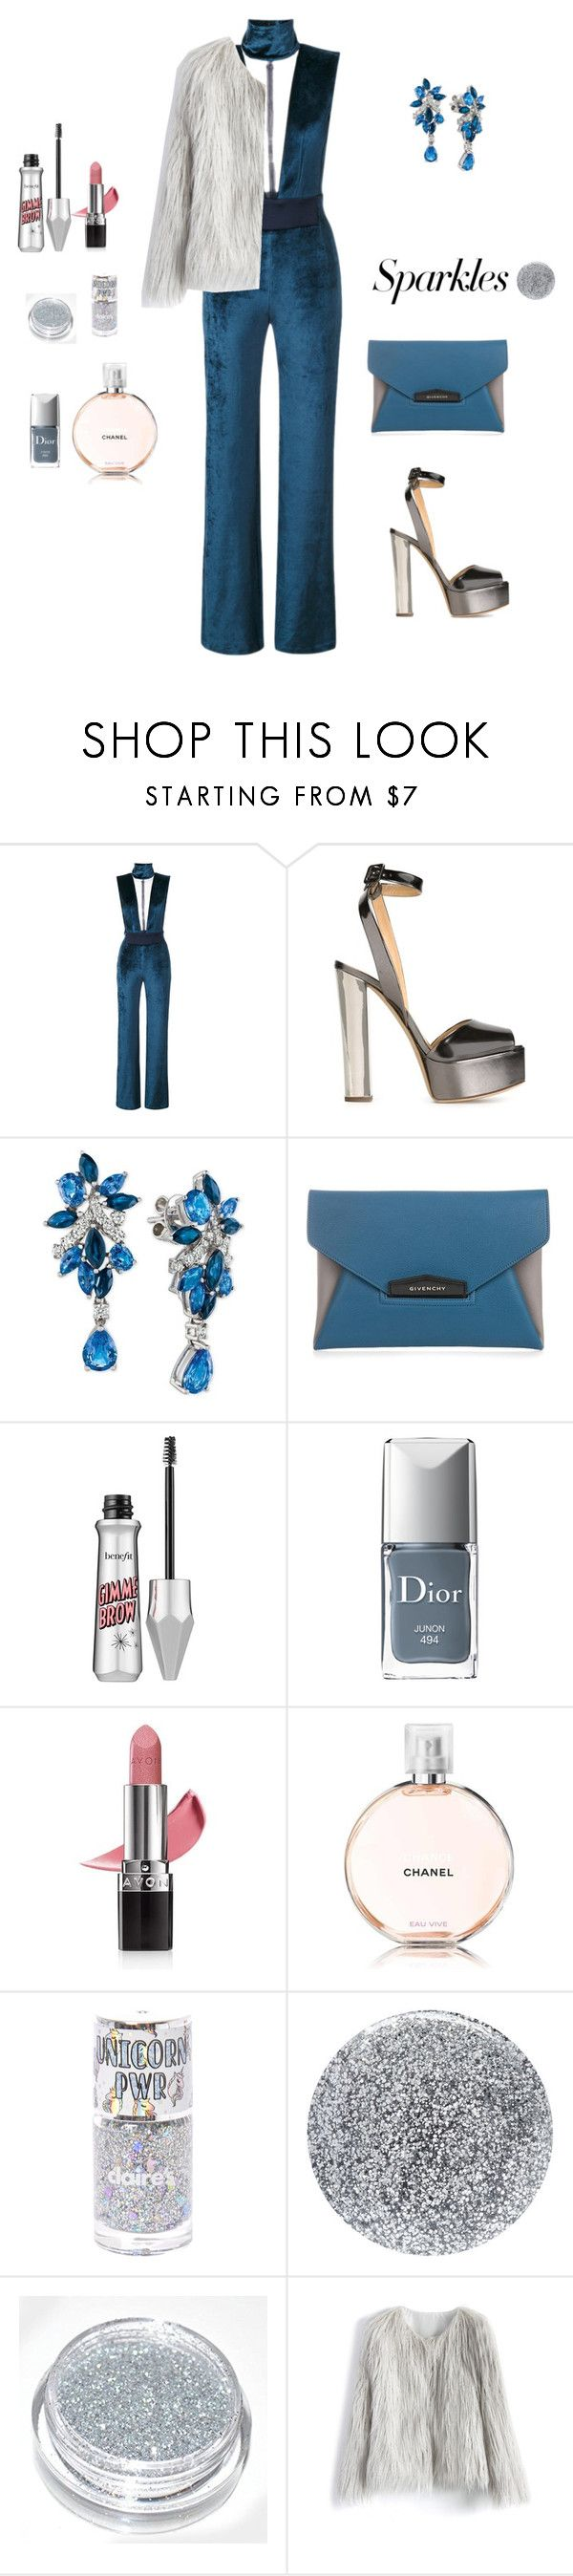 """""""#PolyPresents: Sparkly Beauty"""" by sebolita ❤ liked on Polyvore featuring beauty, Galvan, Giuseppe Zanotti, LE VIAN, Givenchy, Christian Dior, Avon, Chanel, Smith & Cult and Chicwish"""